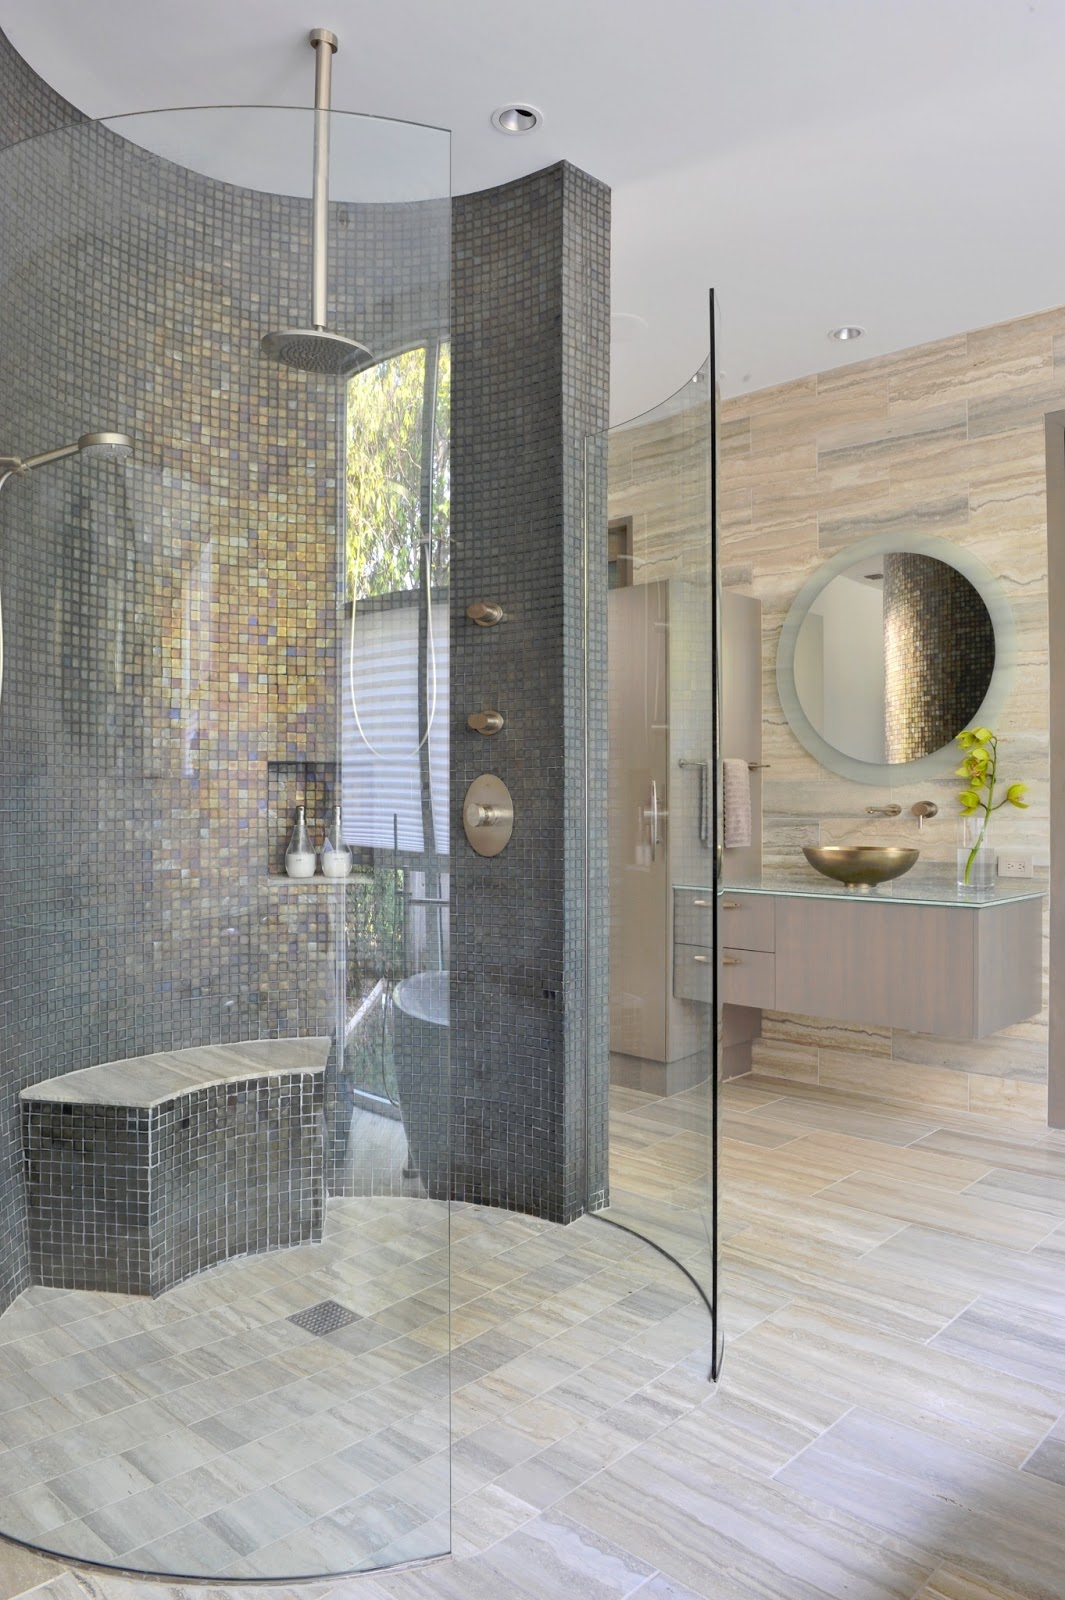 Home Interior Lighting Design Bathroom With Shower Varies From Modern To Vintage Homesfeed